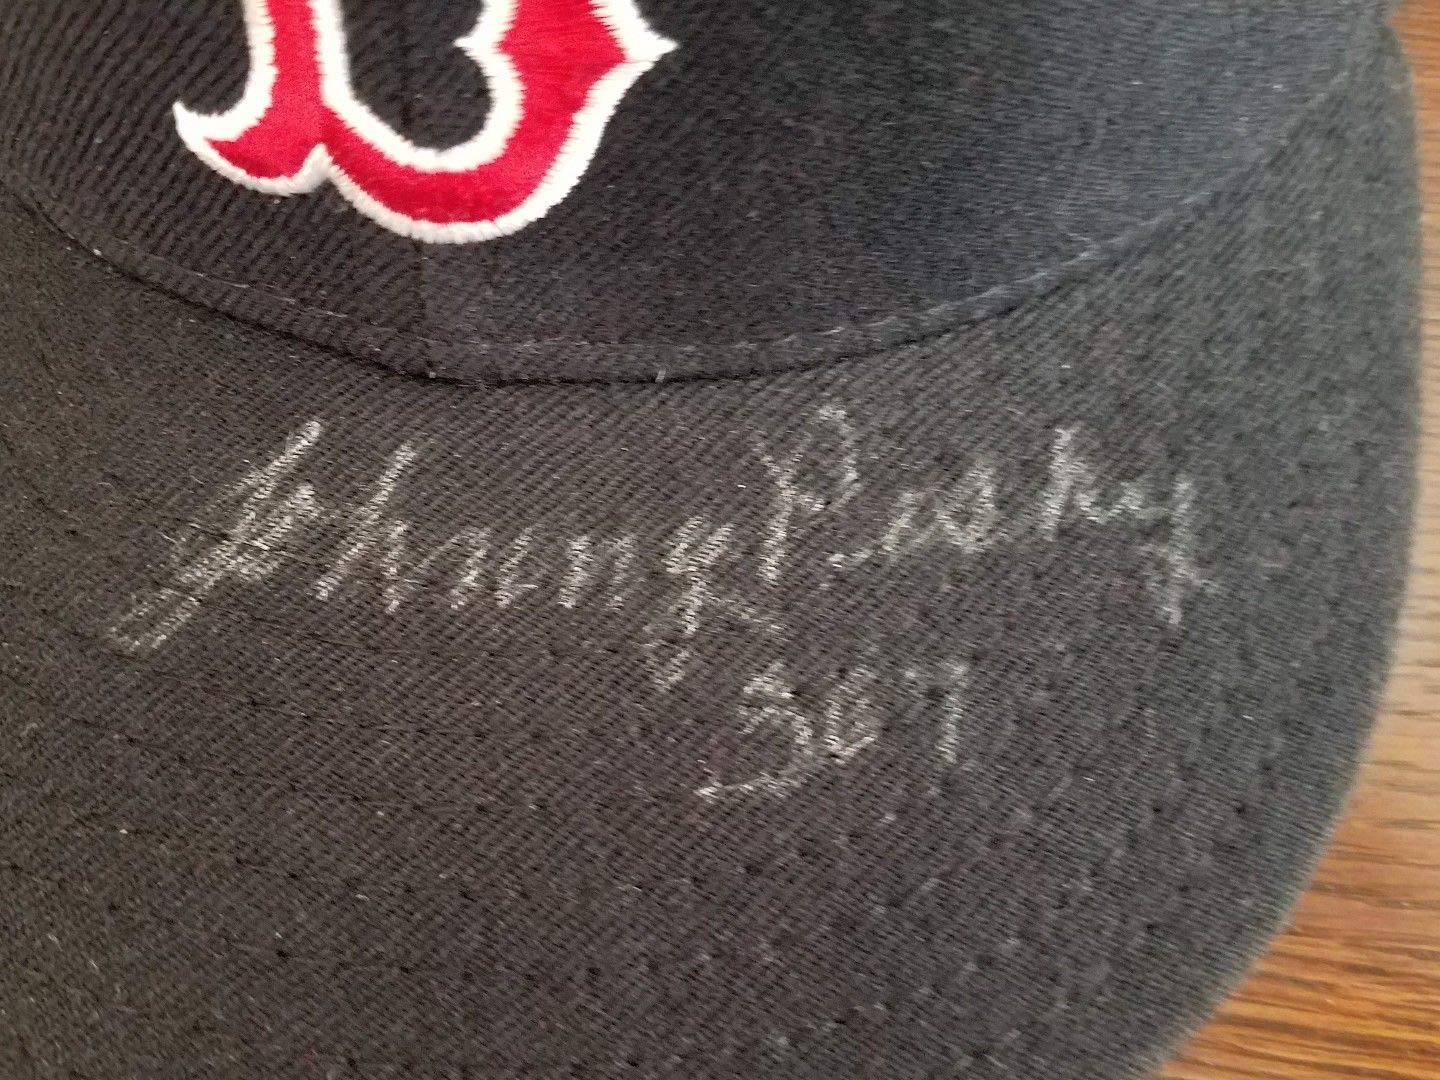 Johnny Pesky Autographed Signed Autograph 307 Boston Red Sox Hat Sports Memorabilia JSA Certified Memorabilia Auto Cap